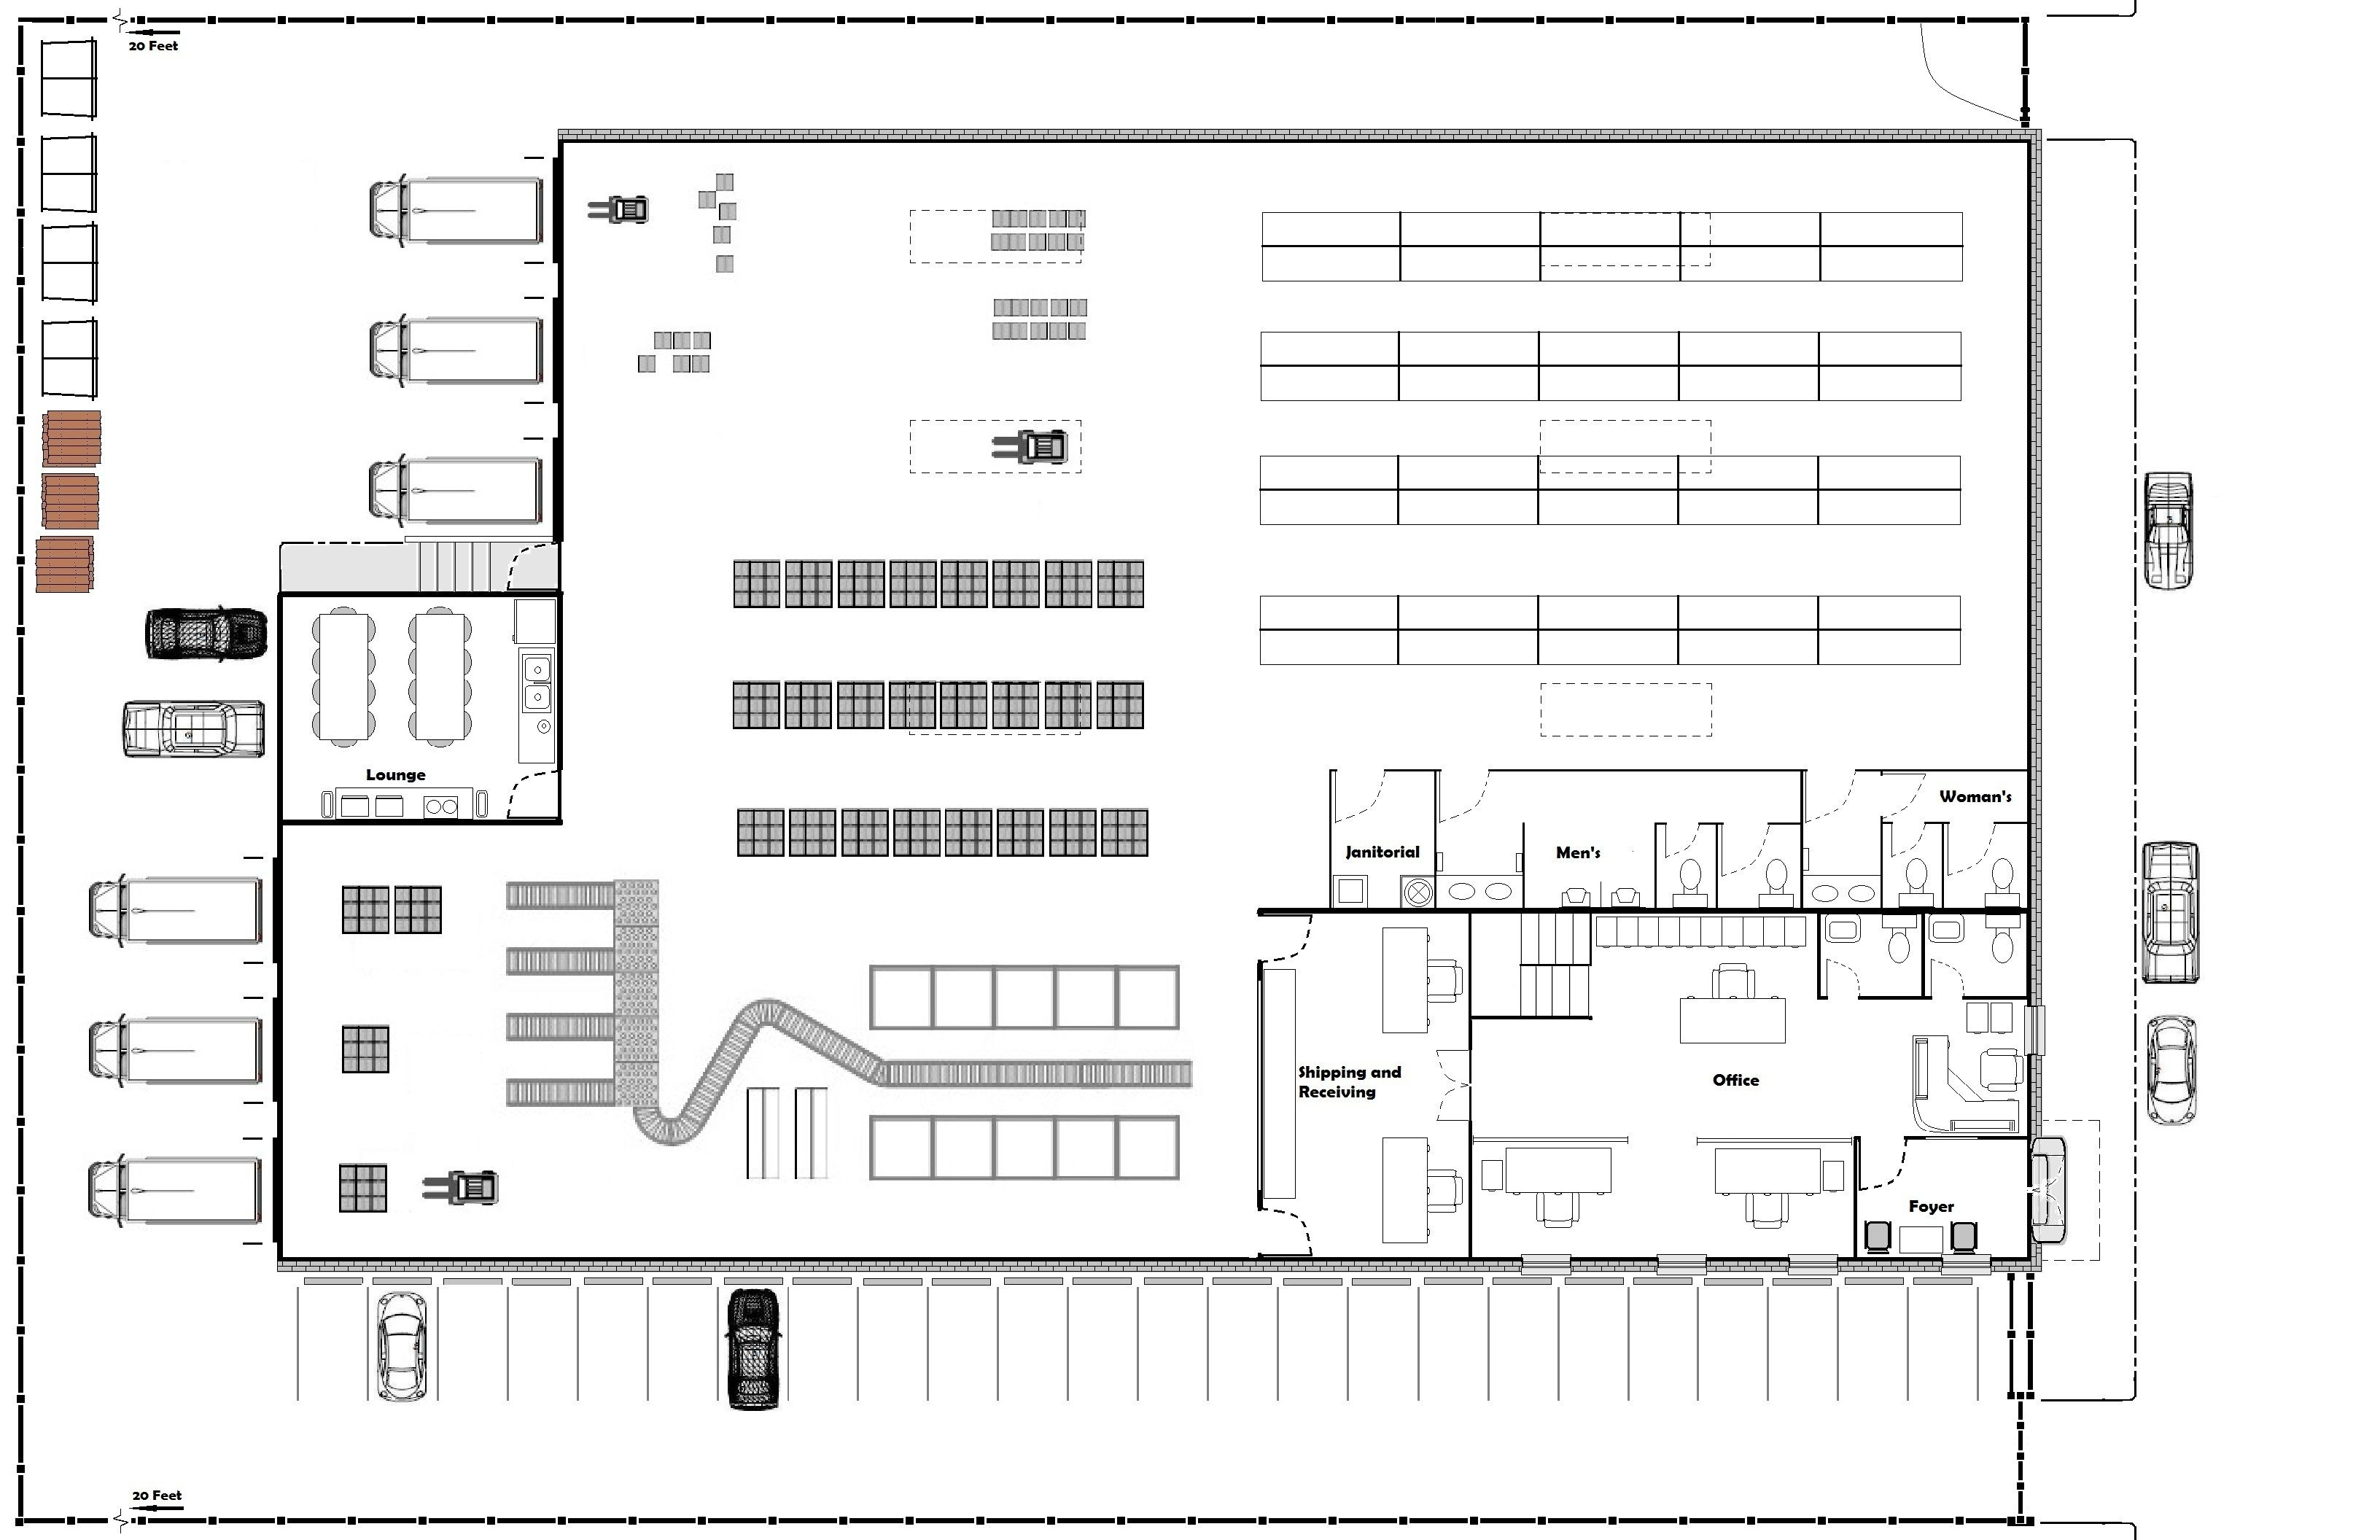 floor plan of warehouse - Google Search | Shadowrun maps | Pinterest ...